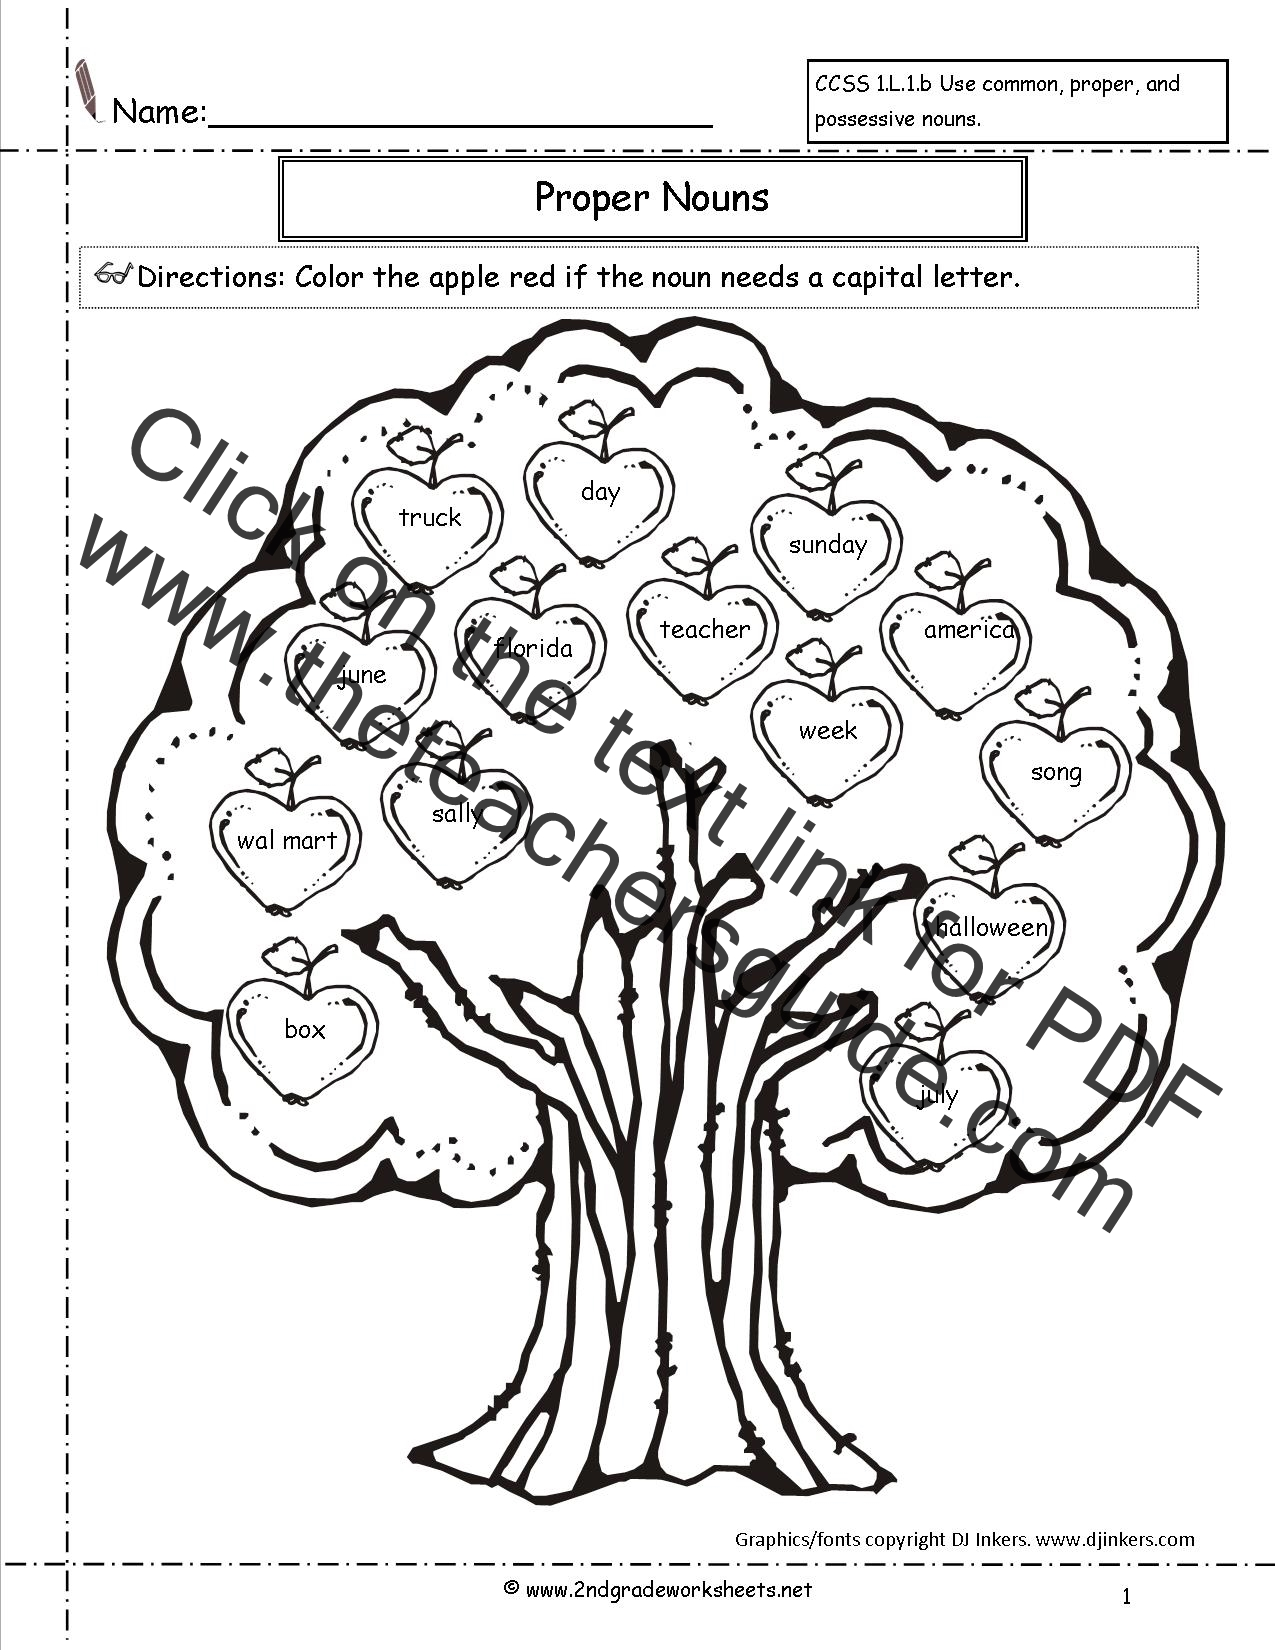 2ndgradeworksheets – Mcgraw Hill Math Worksheets